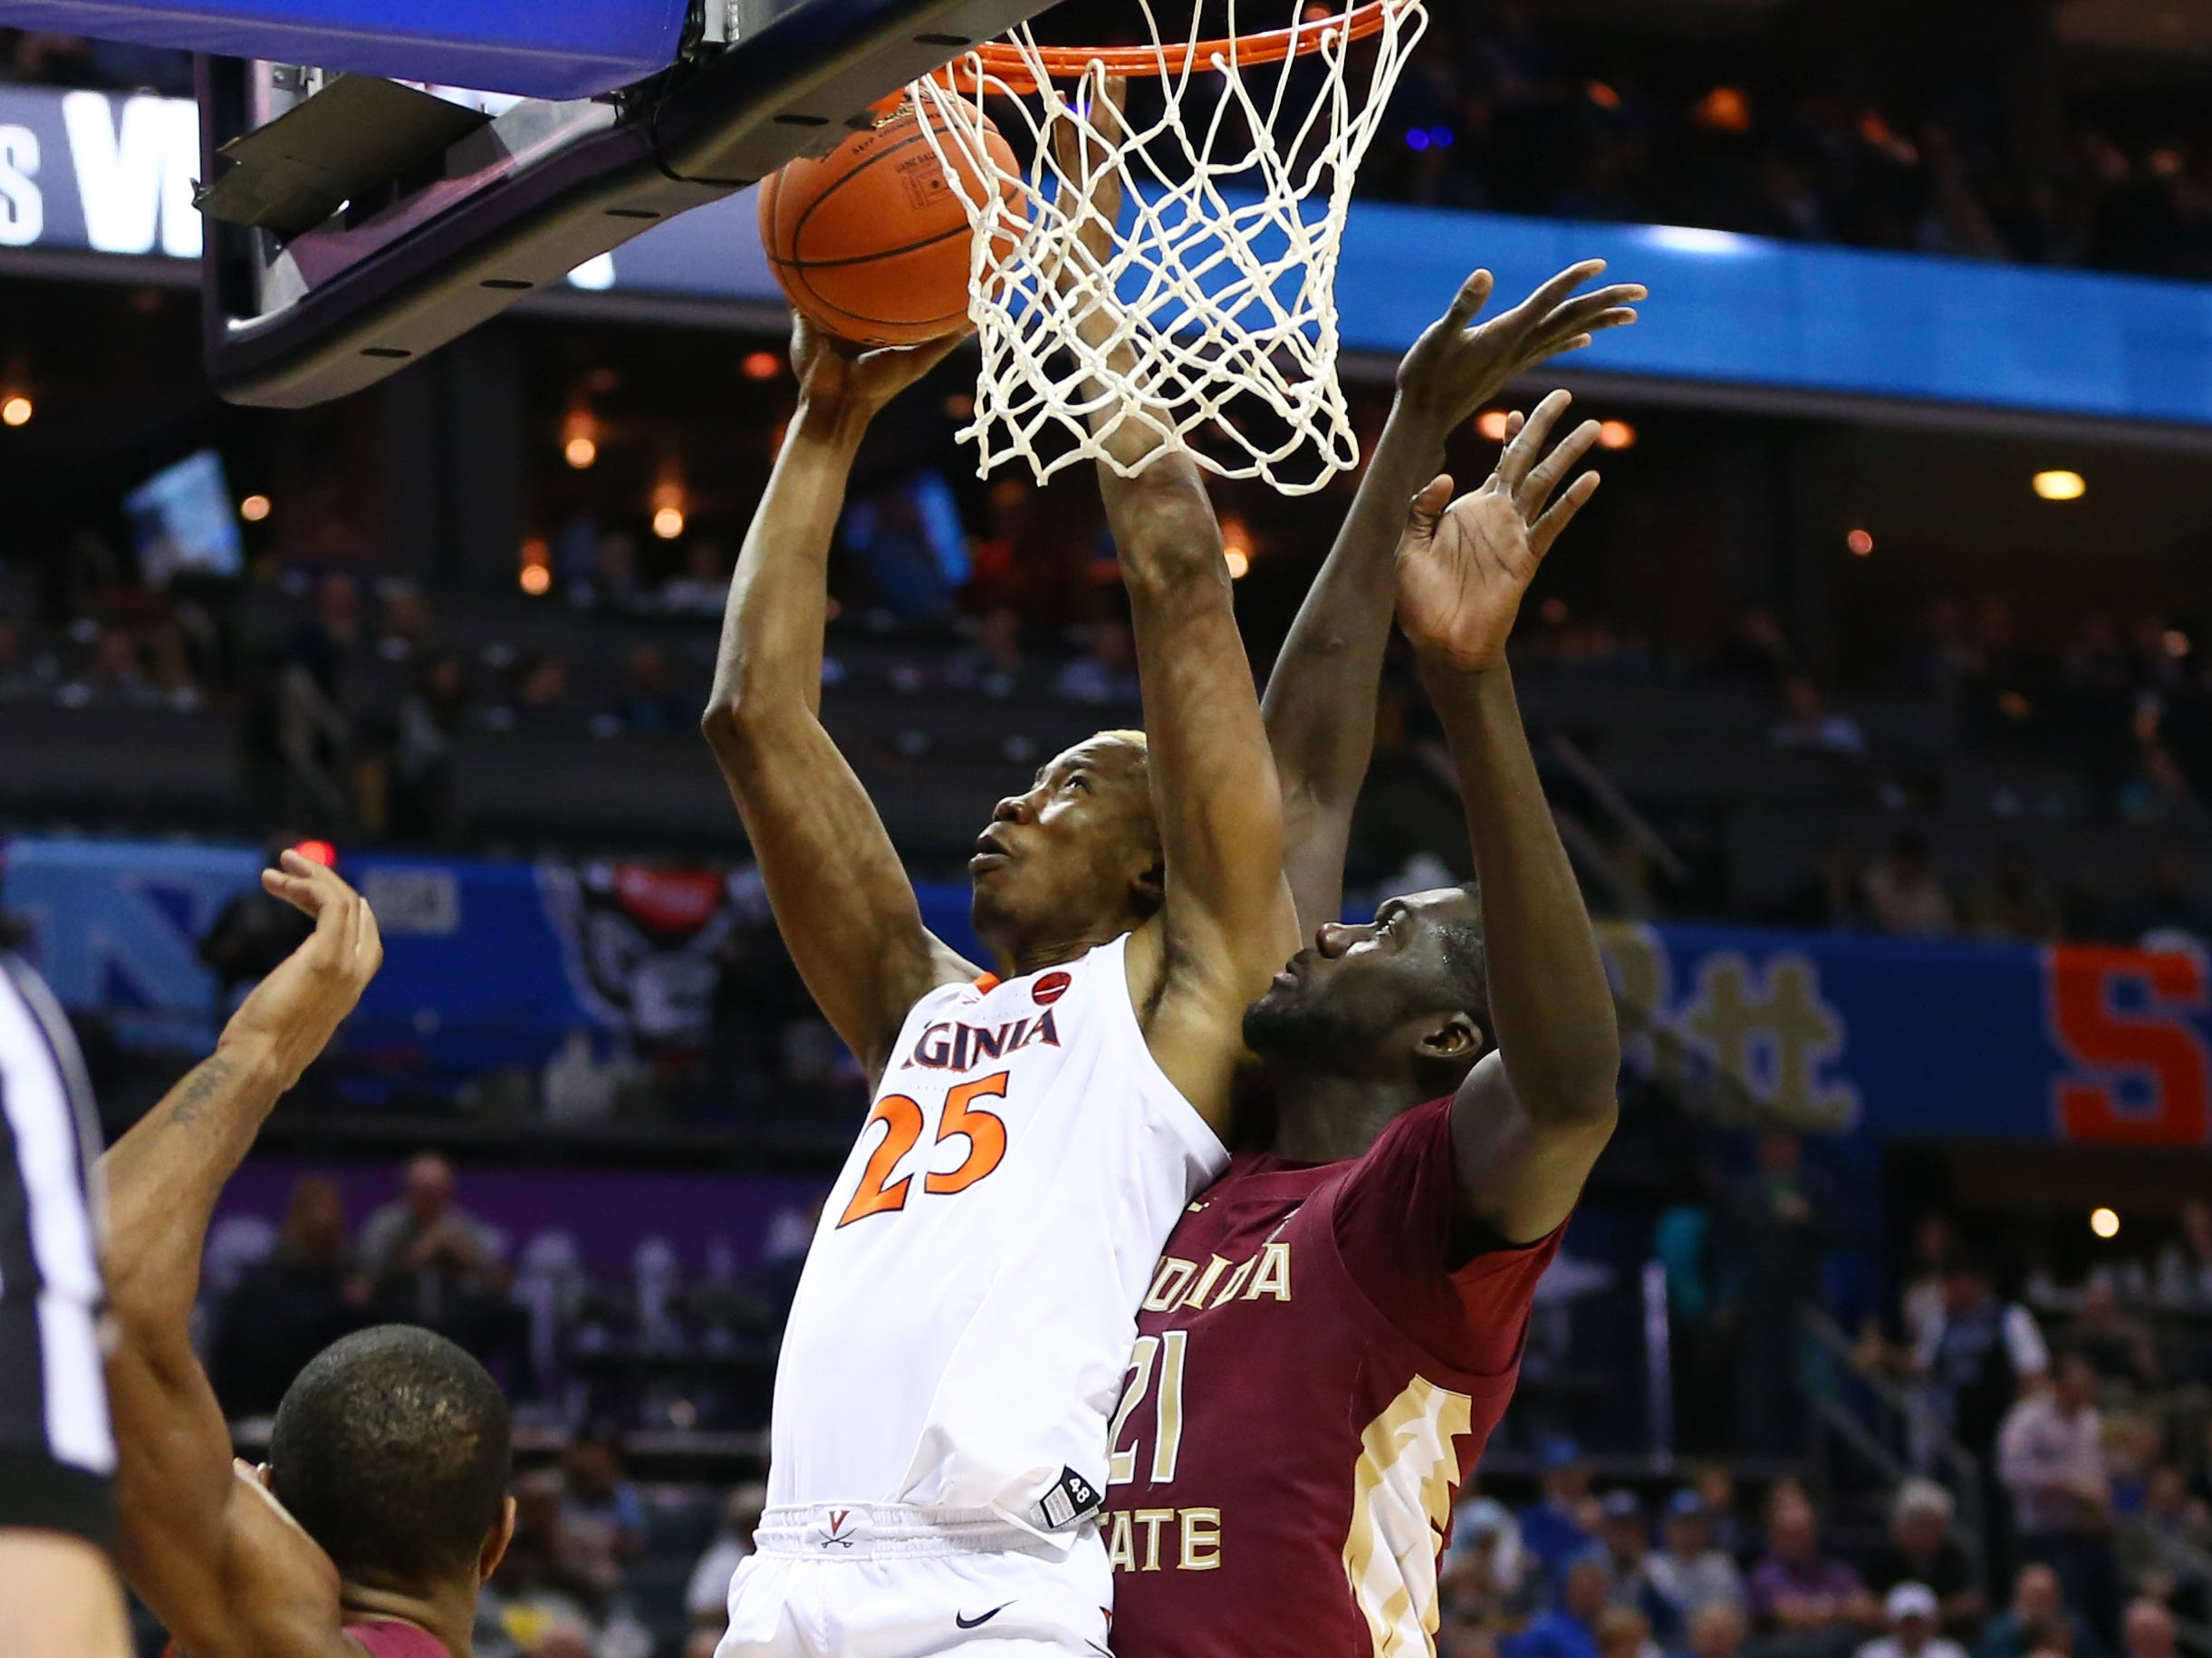 Mar 15, 2019; Charlotte, NC, USA; Virginia Cavaliers forward Mamadi Diakite (25) shoots the ball against Florida State Seminoles center Christ Koumadje (21) in the second half in the ACC conference tournament at Spectrum Center. Mandatory Credit: Jeremy Brevard-USA TODAY Sports